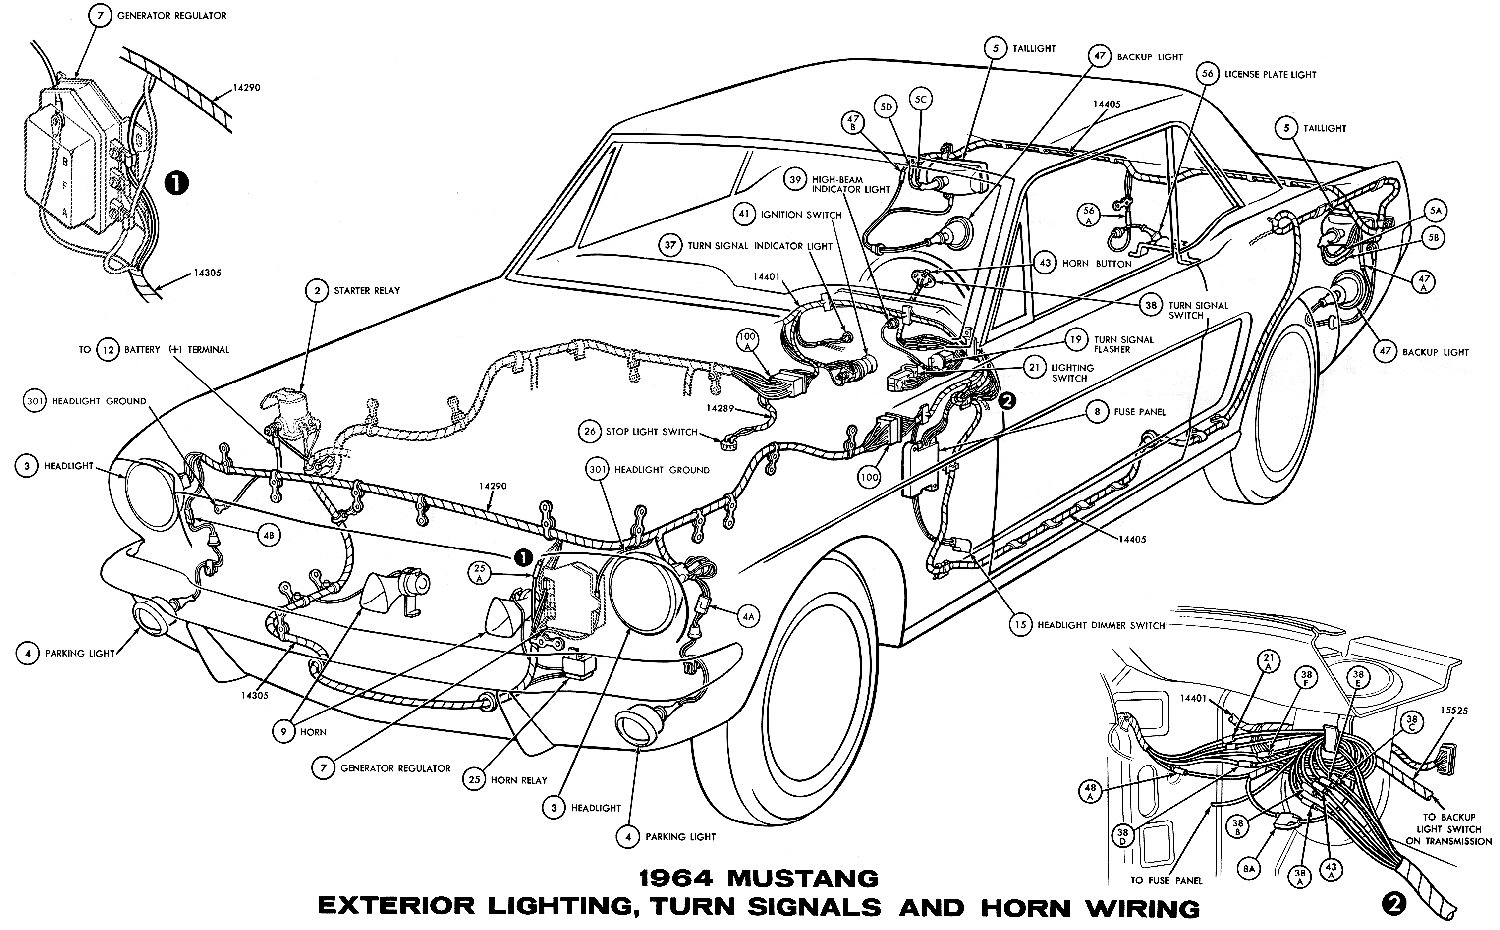 Exterior Light Turn Signals And Horns Wiring Diagrams Of 1966 1951 Ford Truck Diagram 1964 Mustang Average Joe Restoration Rh Averagejoerestoration Com